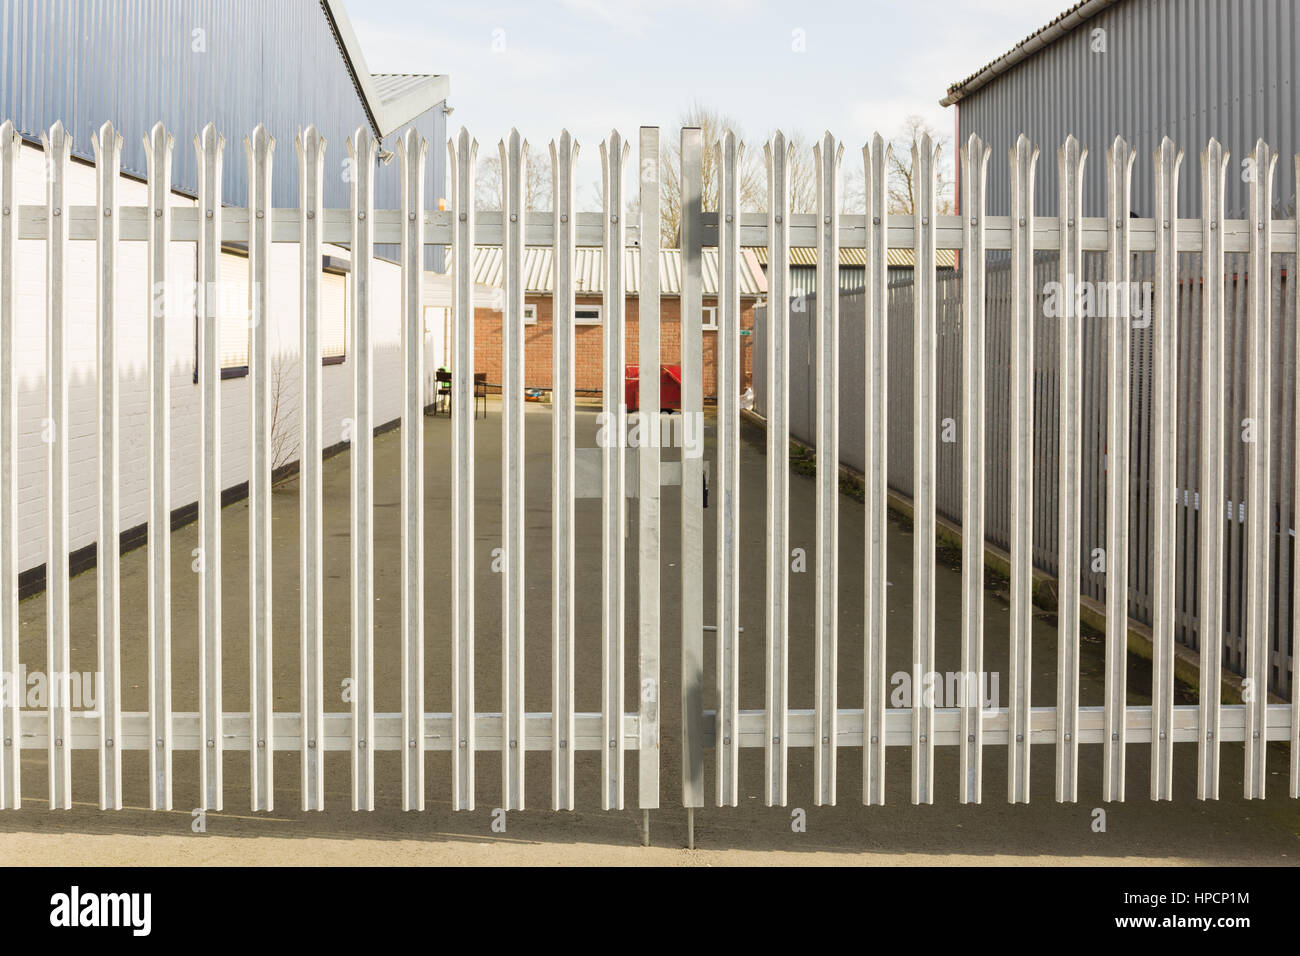 Set of locked spiked security gates at an industrial or commercial premises Stock Photo